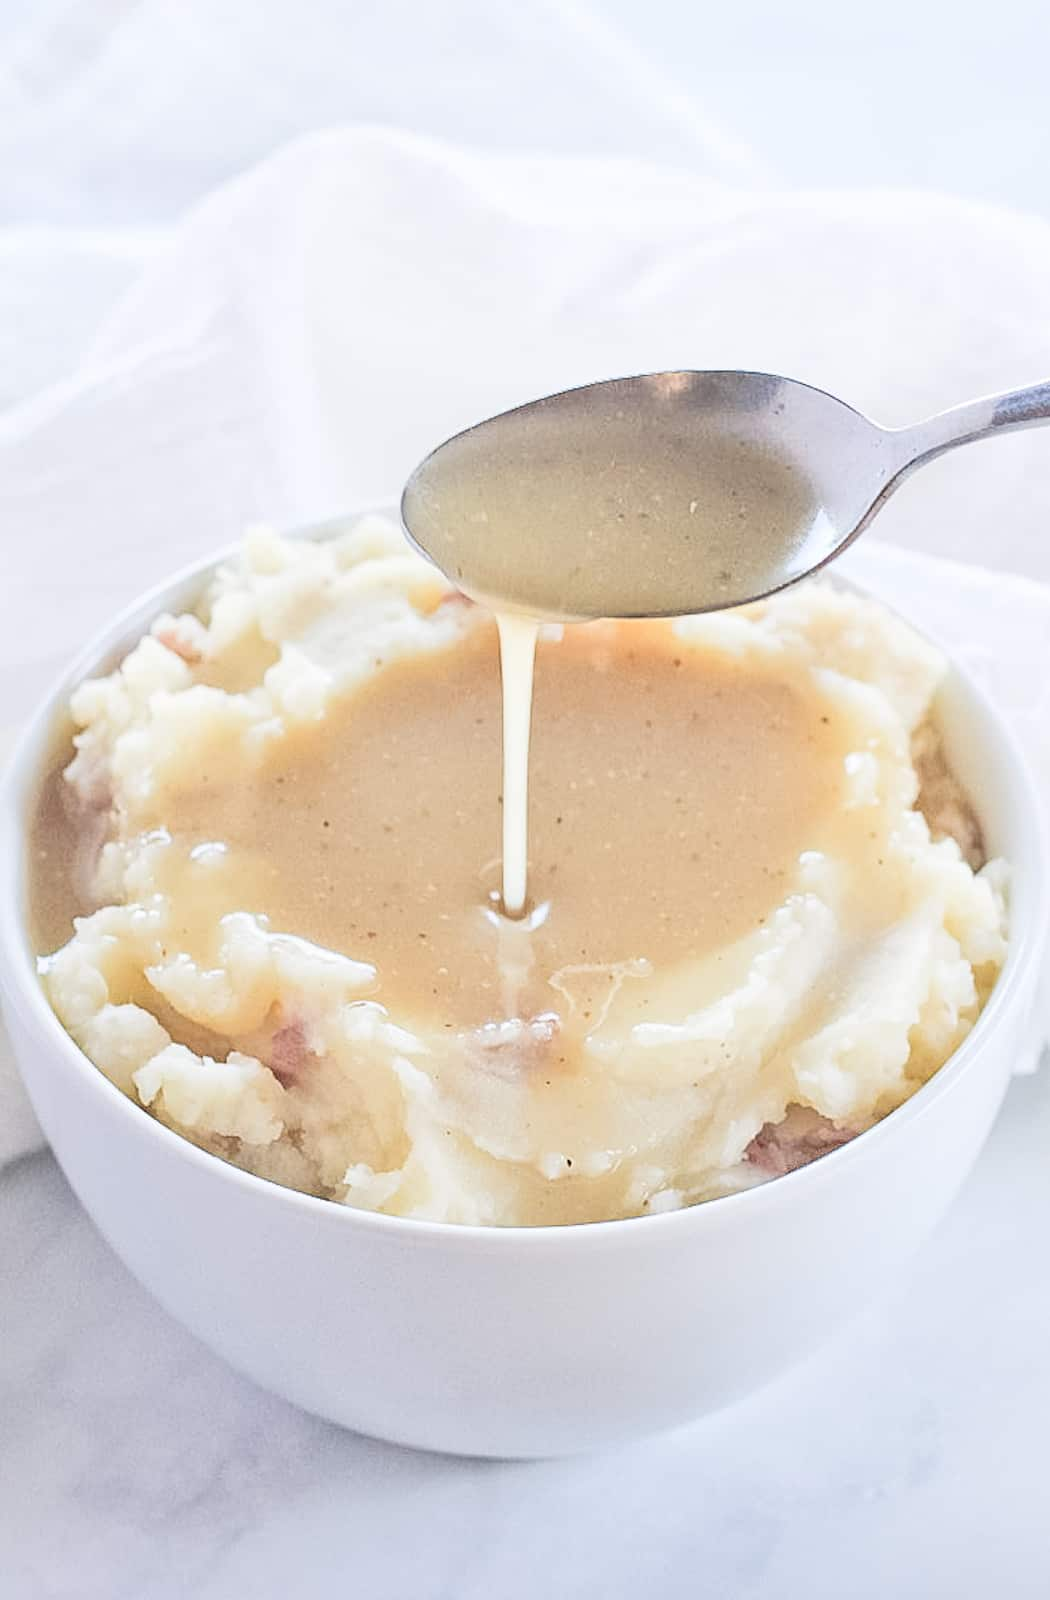 Spoon dipping into a gravy and mashed potato filled bowl.